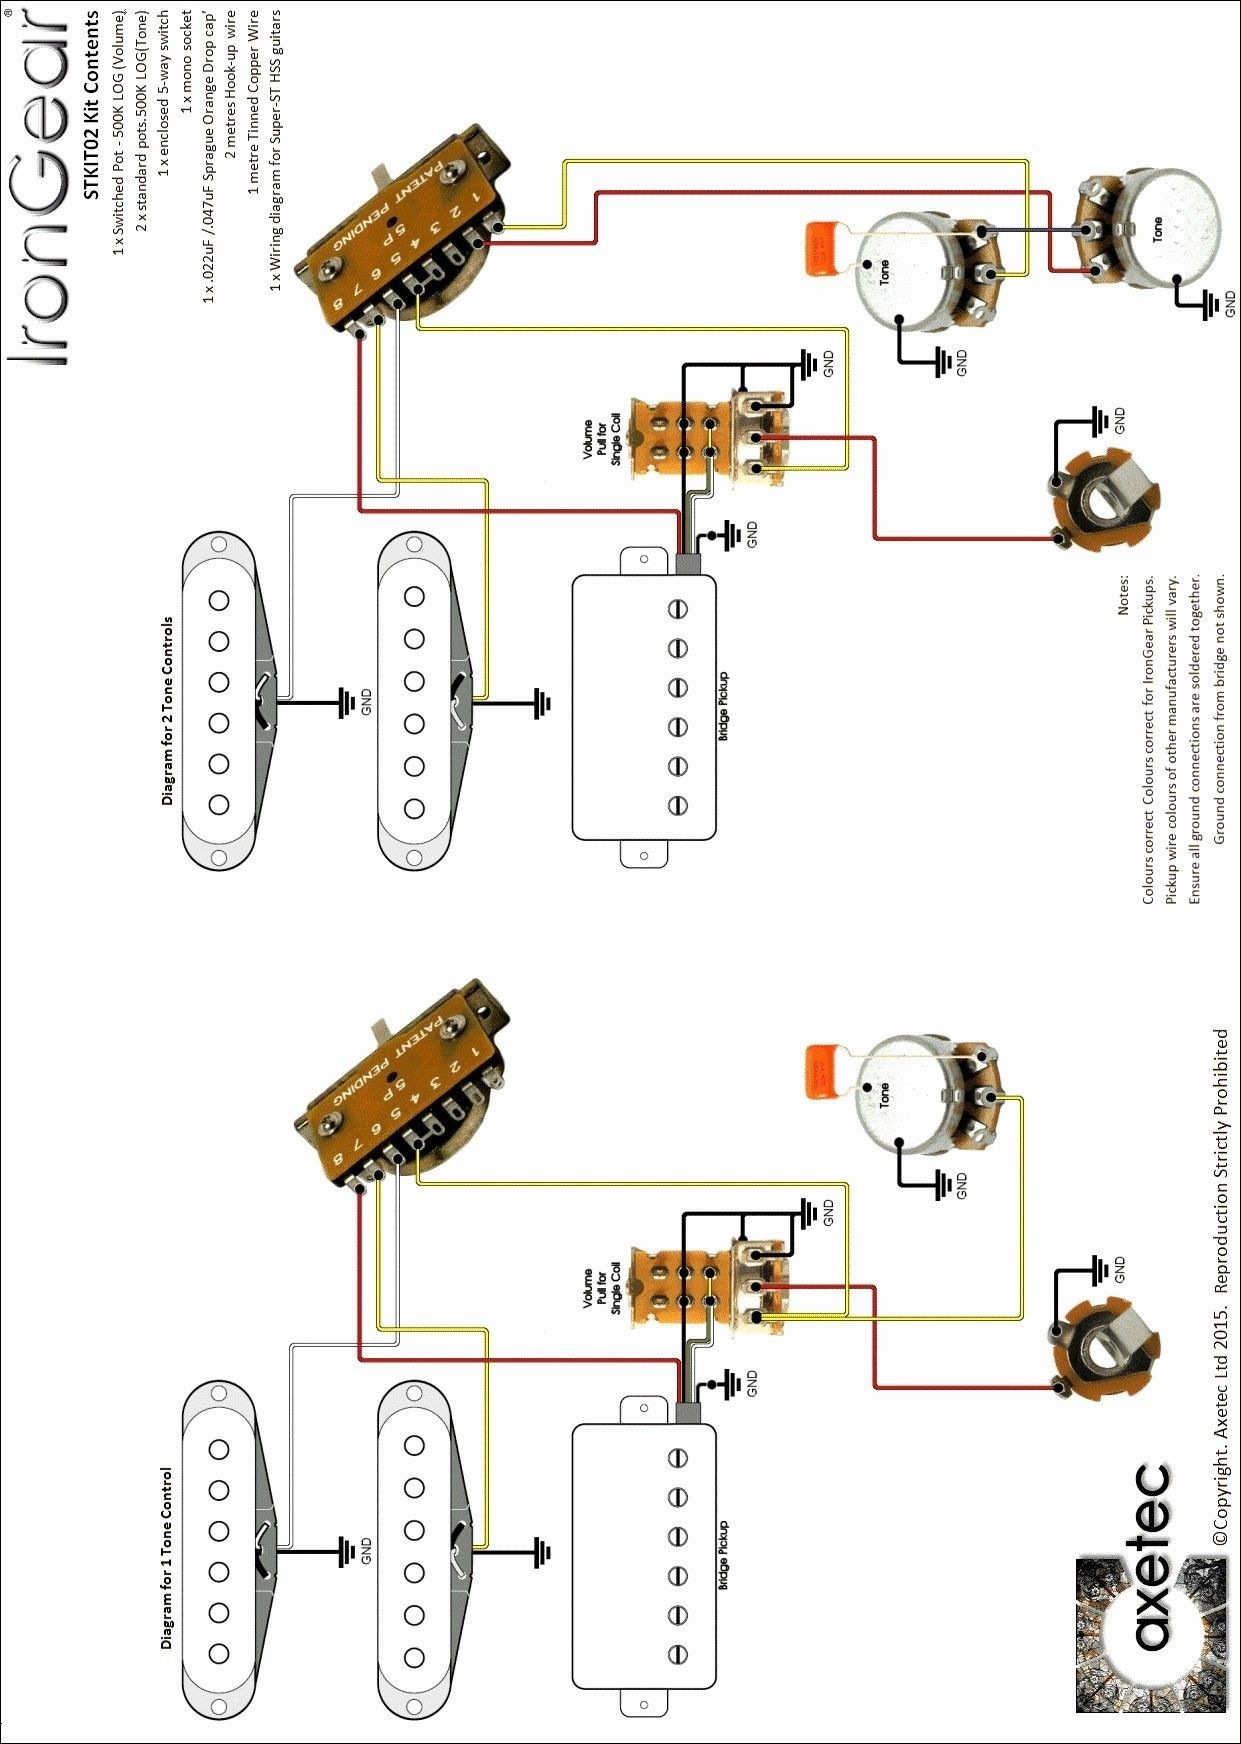 small resolution of fender scn pickup wiring diagram inside diagrams wellread me